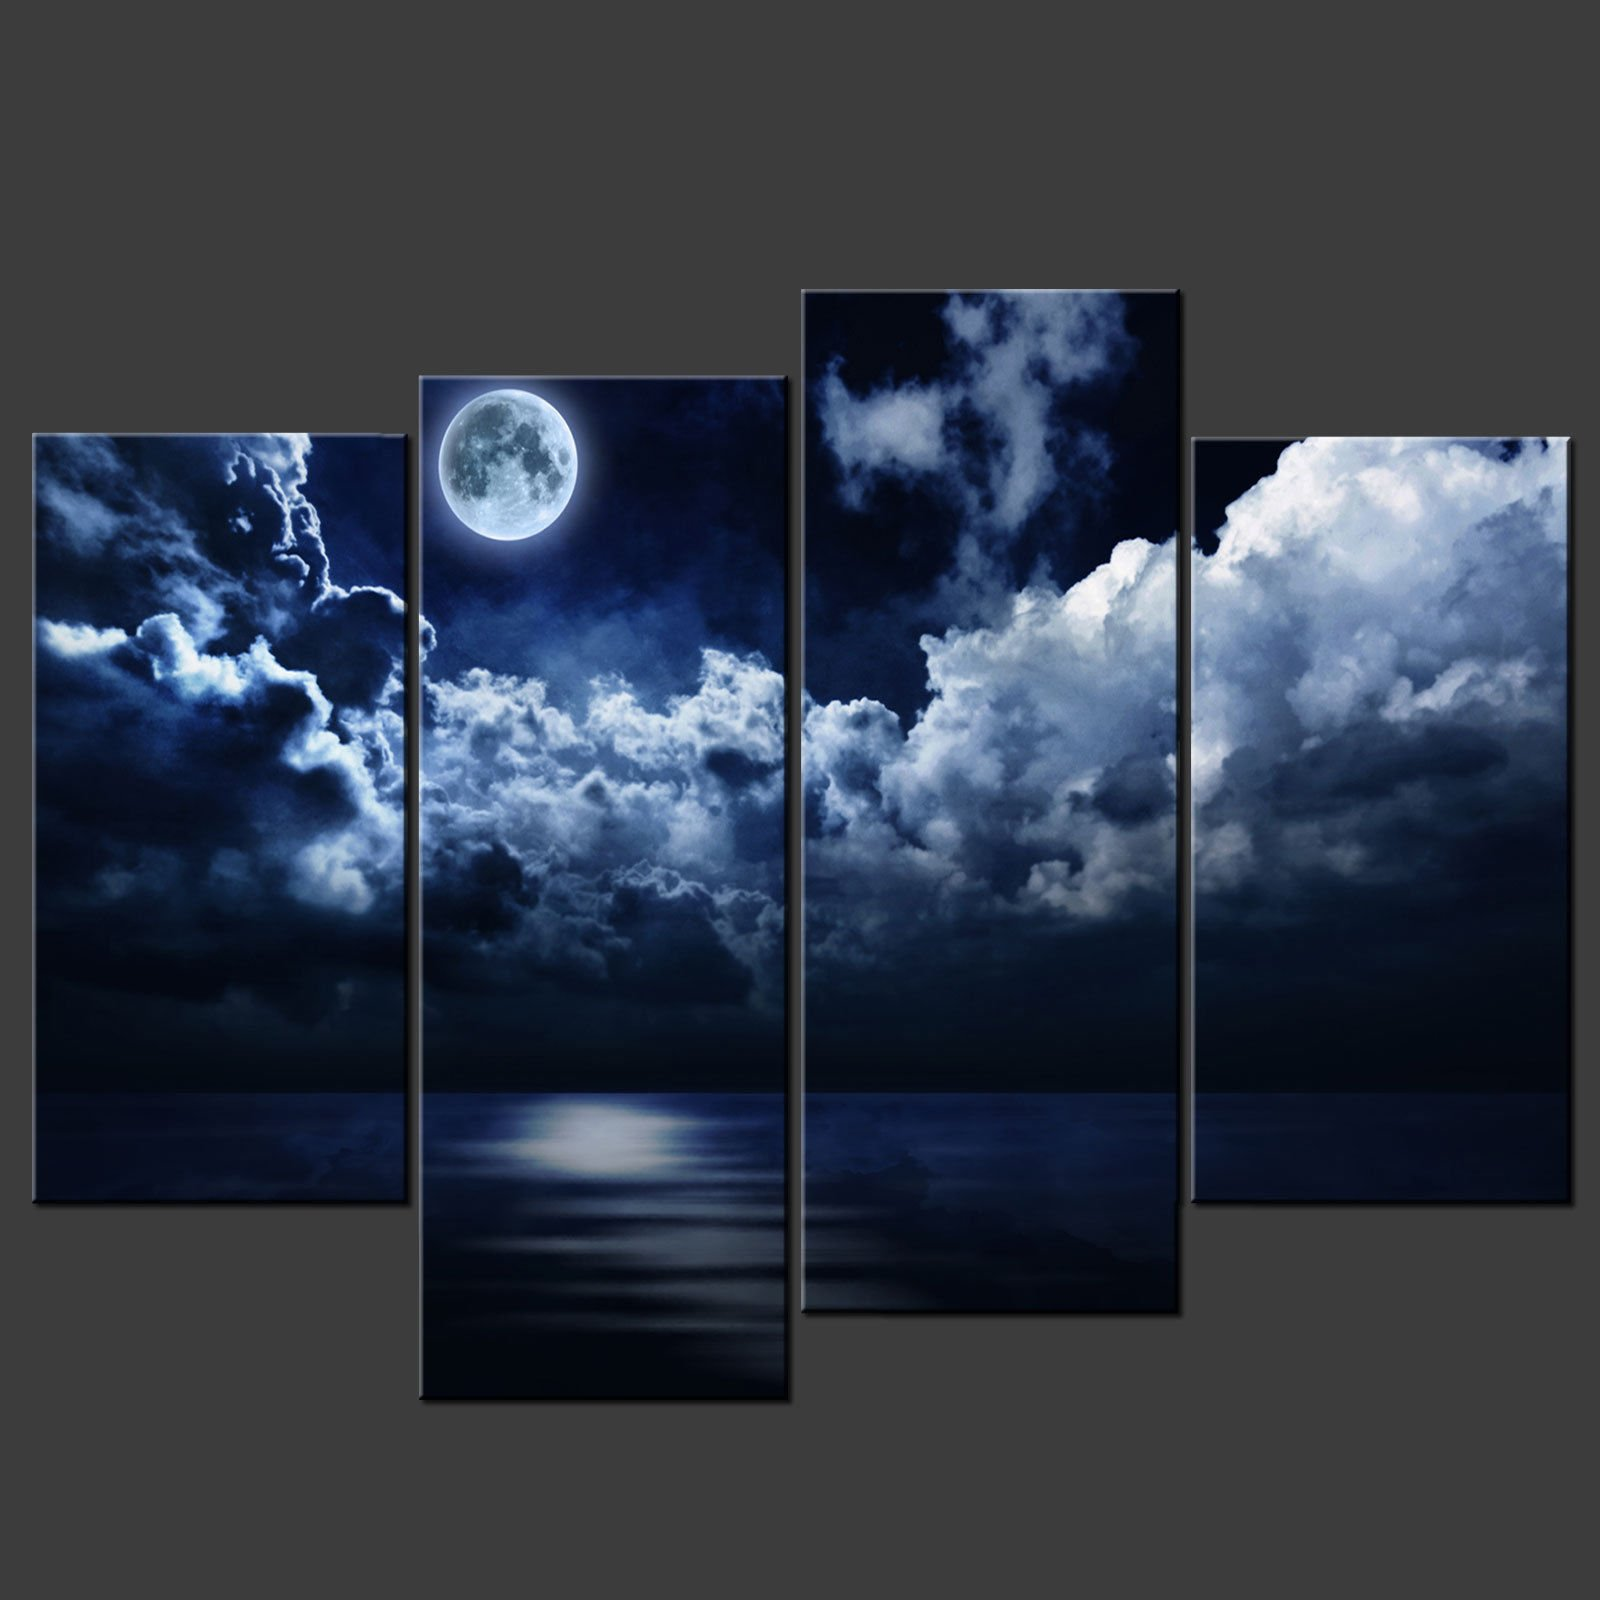 Pin Blue Sky Canvas Image Search Results on Pinterest